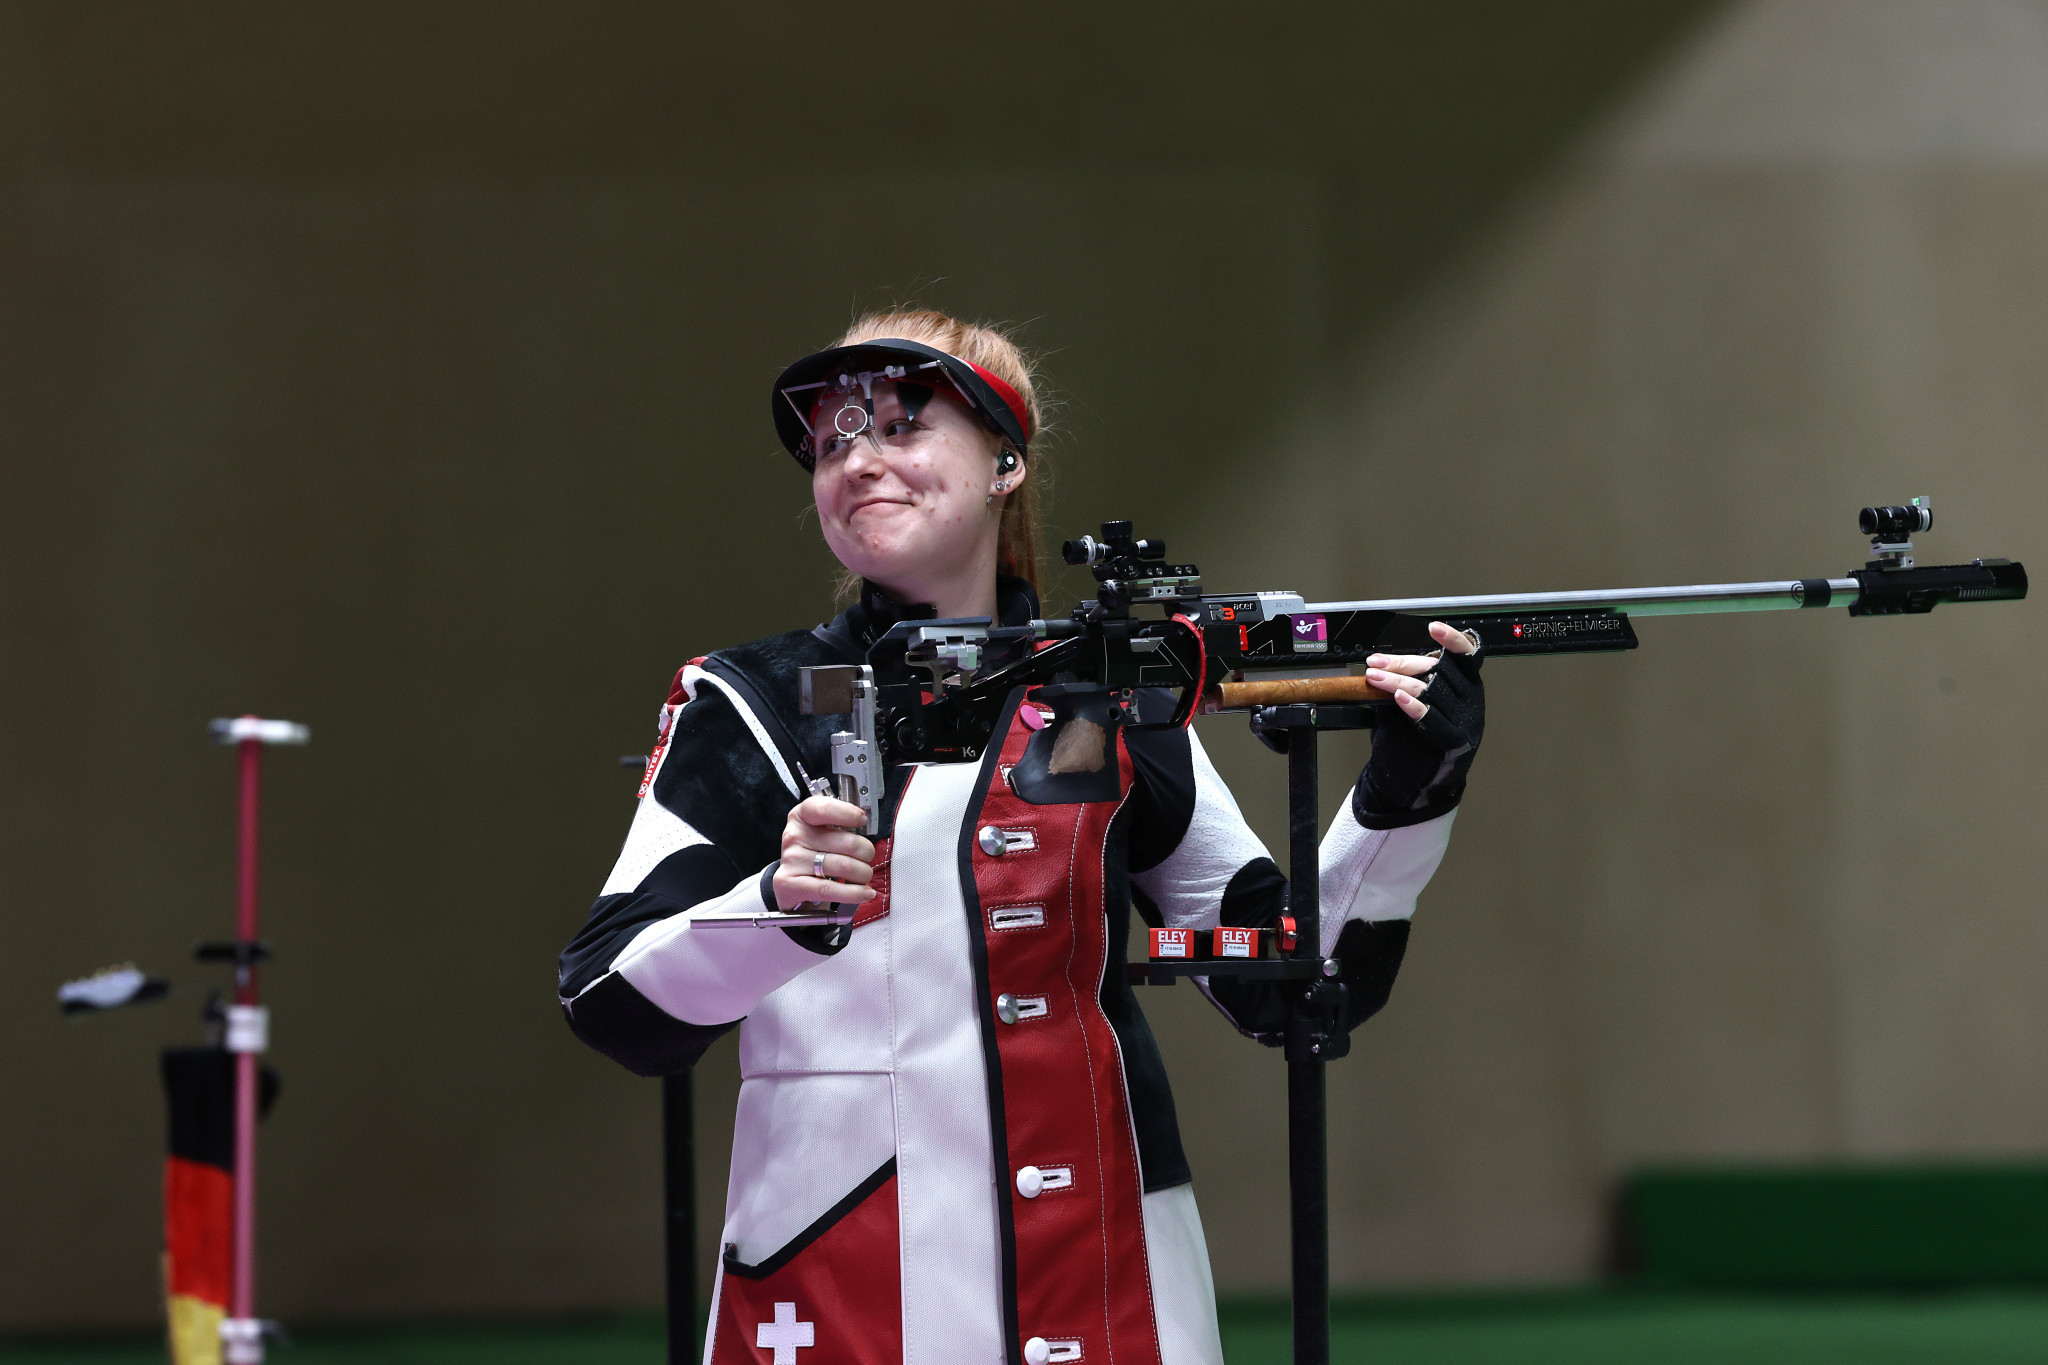 Nina Christen of Switzerland is all smiles after taking gold in the women's 50m rifle 3 positions event ©Getty Images